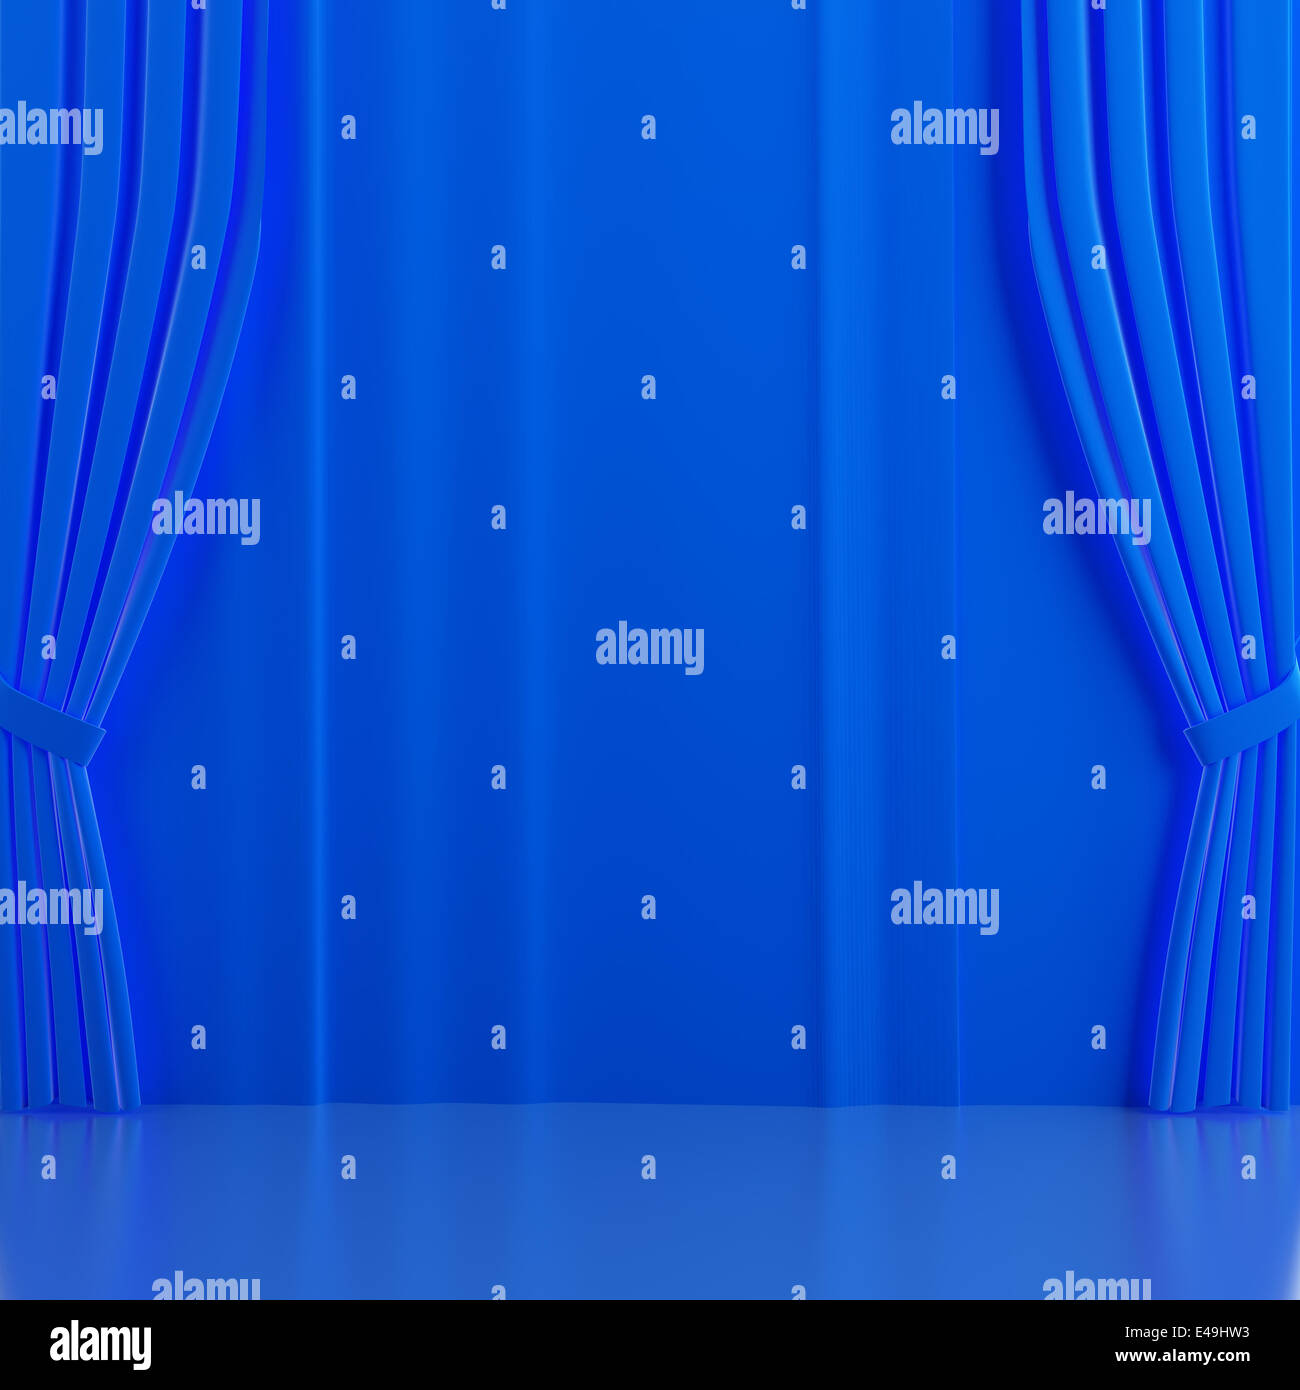 Brightly blue curtains on a theatrical scene - Stock Image